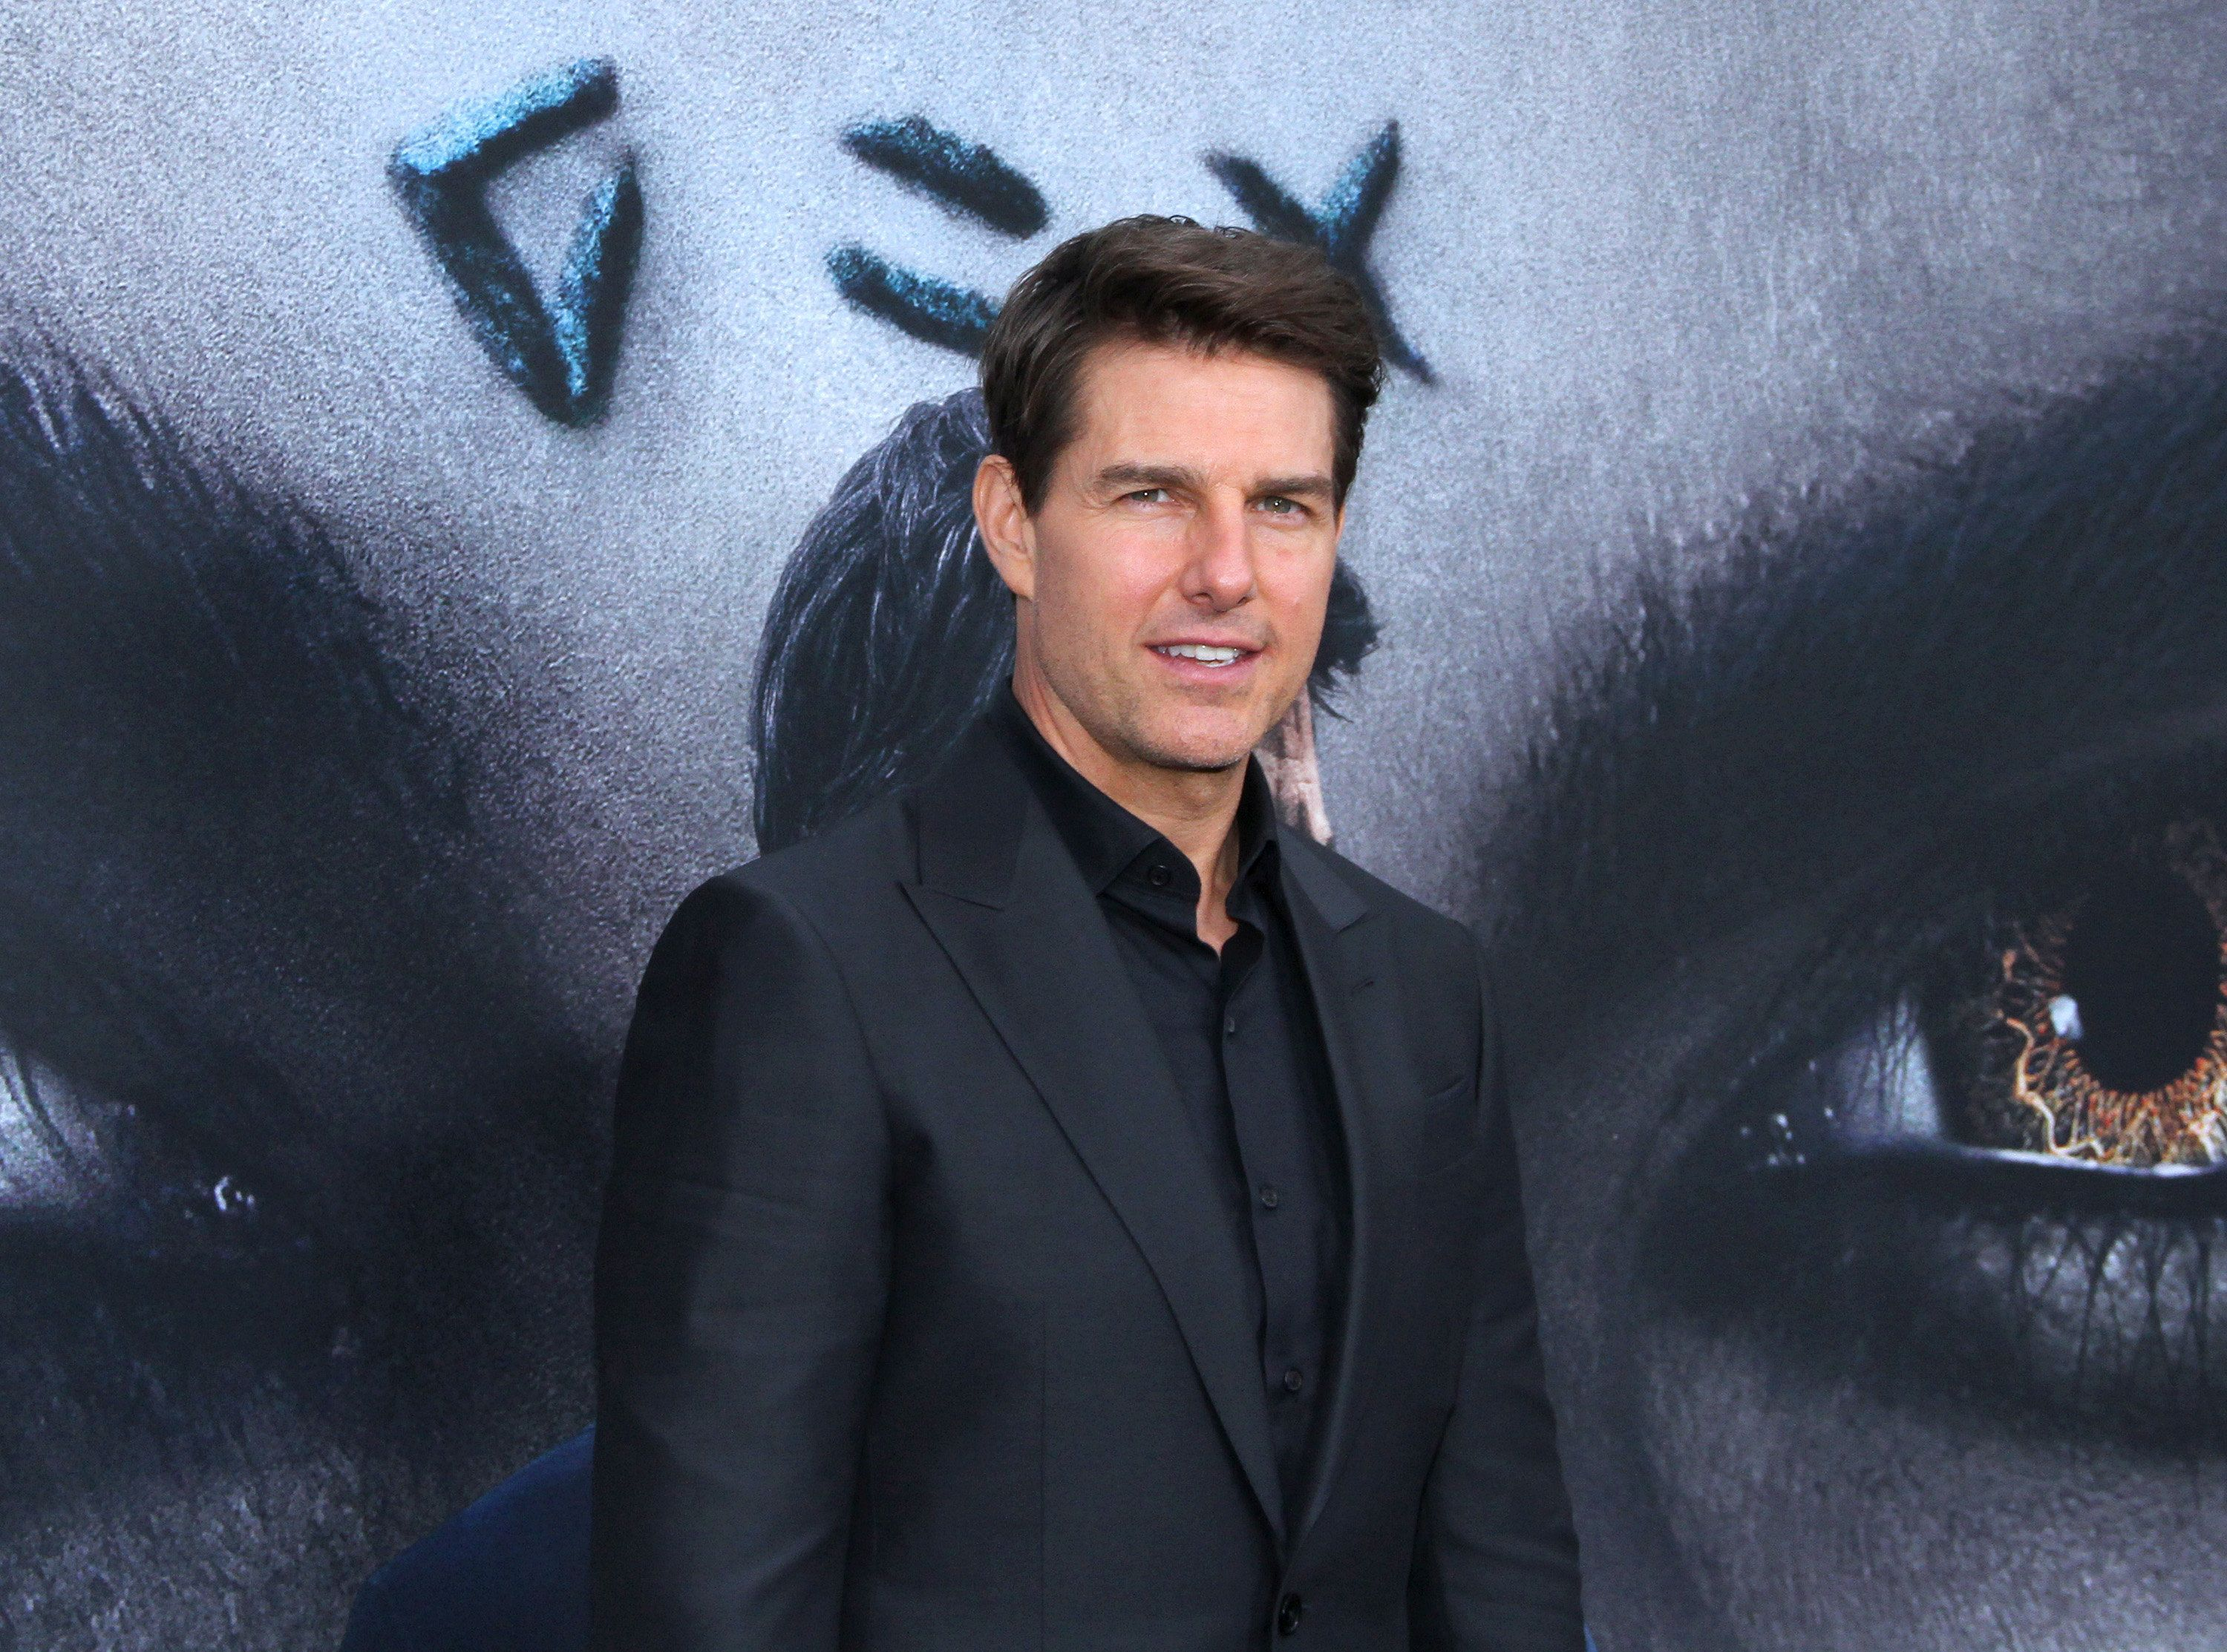 Tom Cruise's 'Mission: Impossible' Injury Brings Production To A